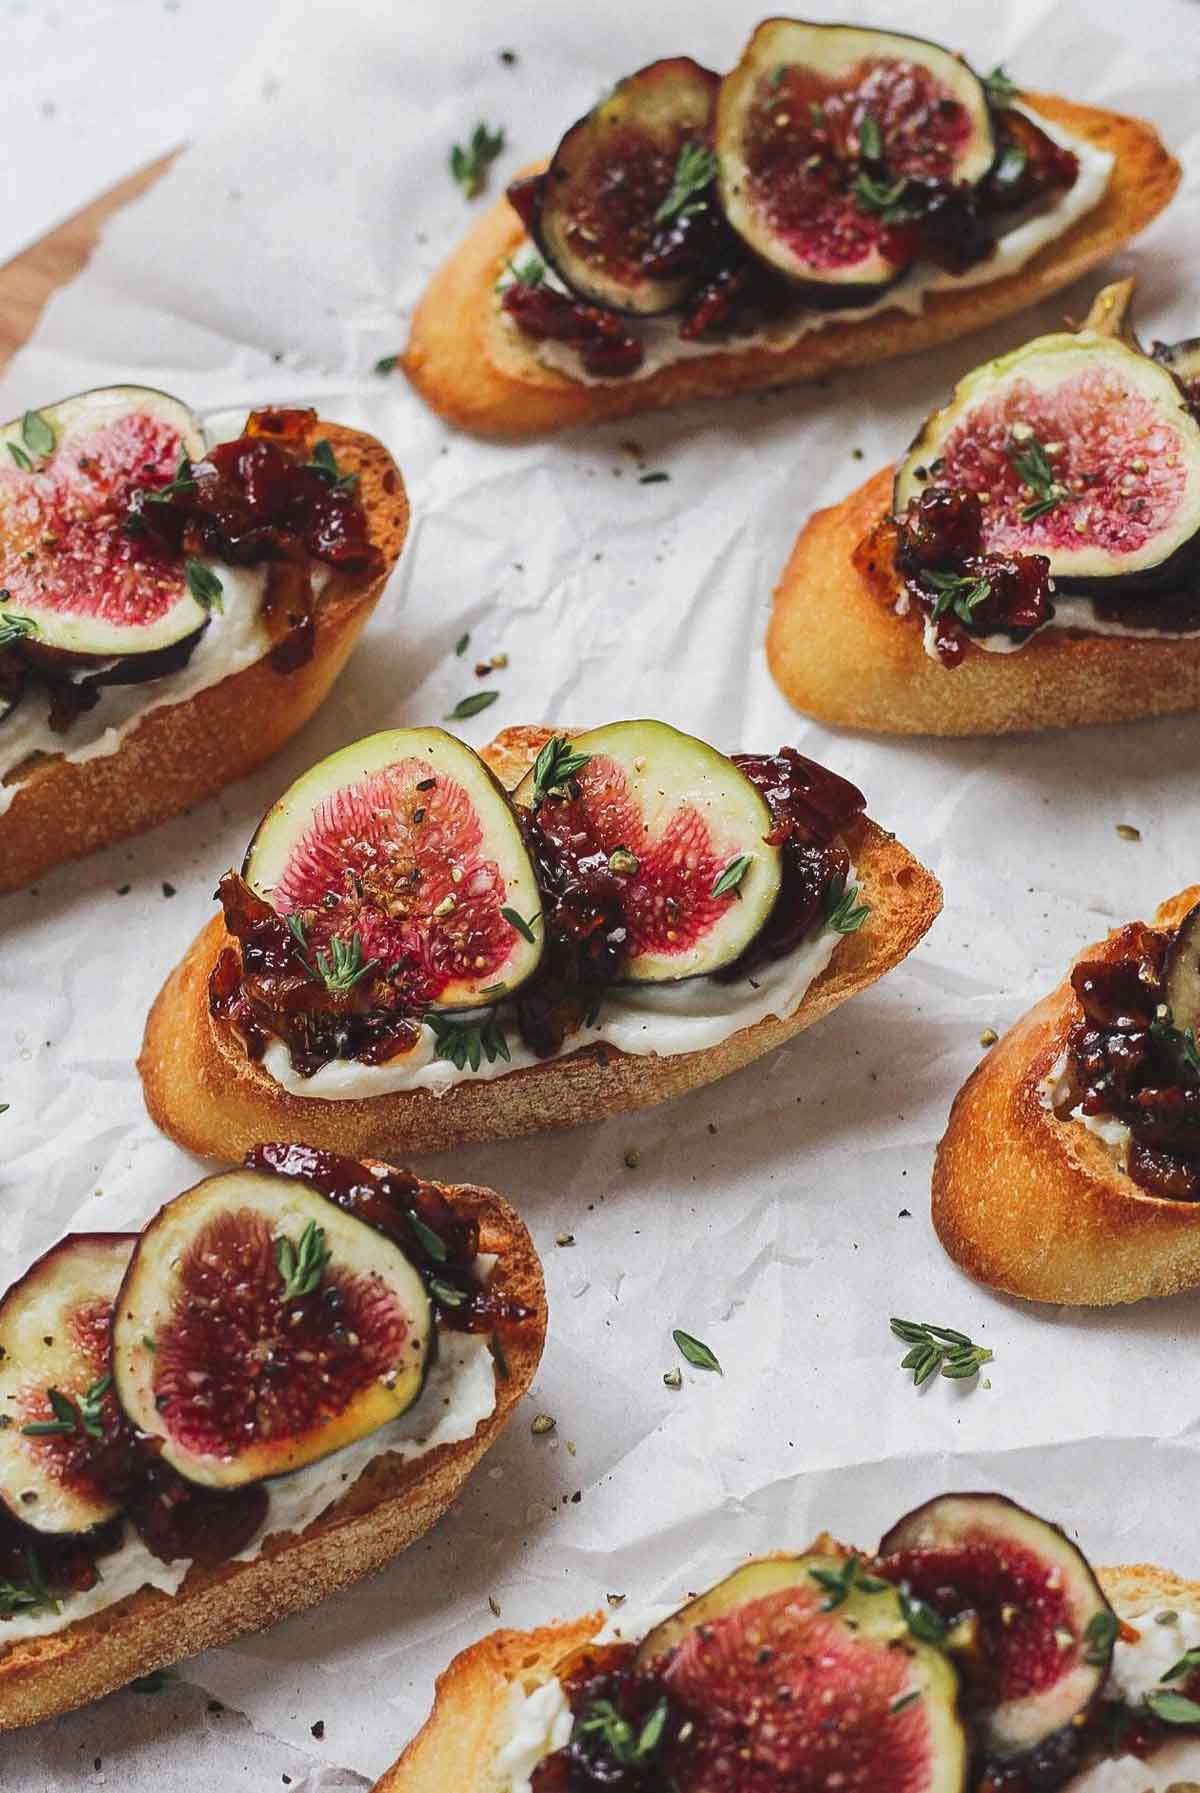 7 fig and bacon jam crostini on paper.